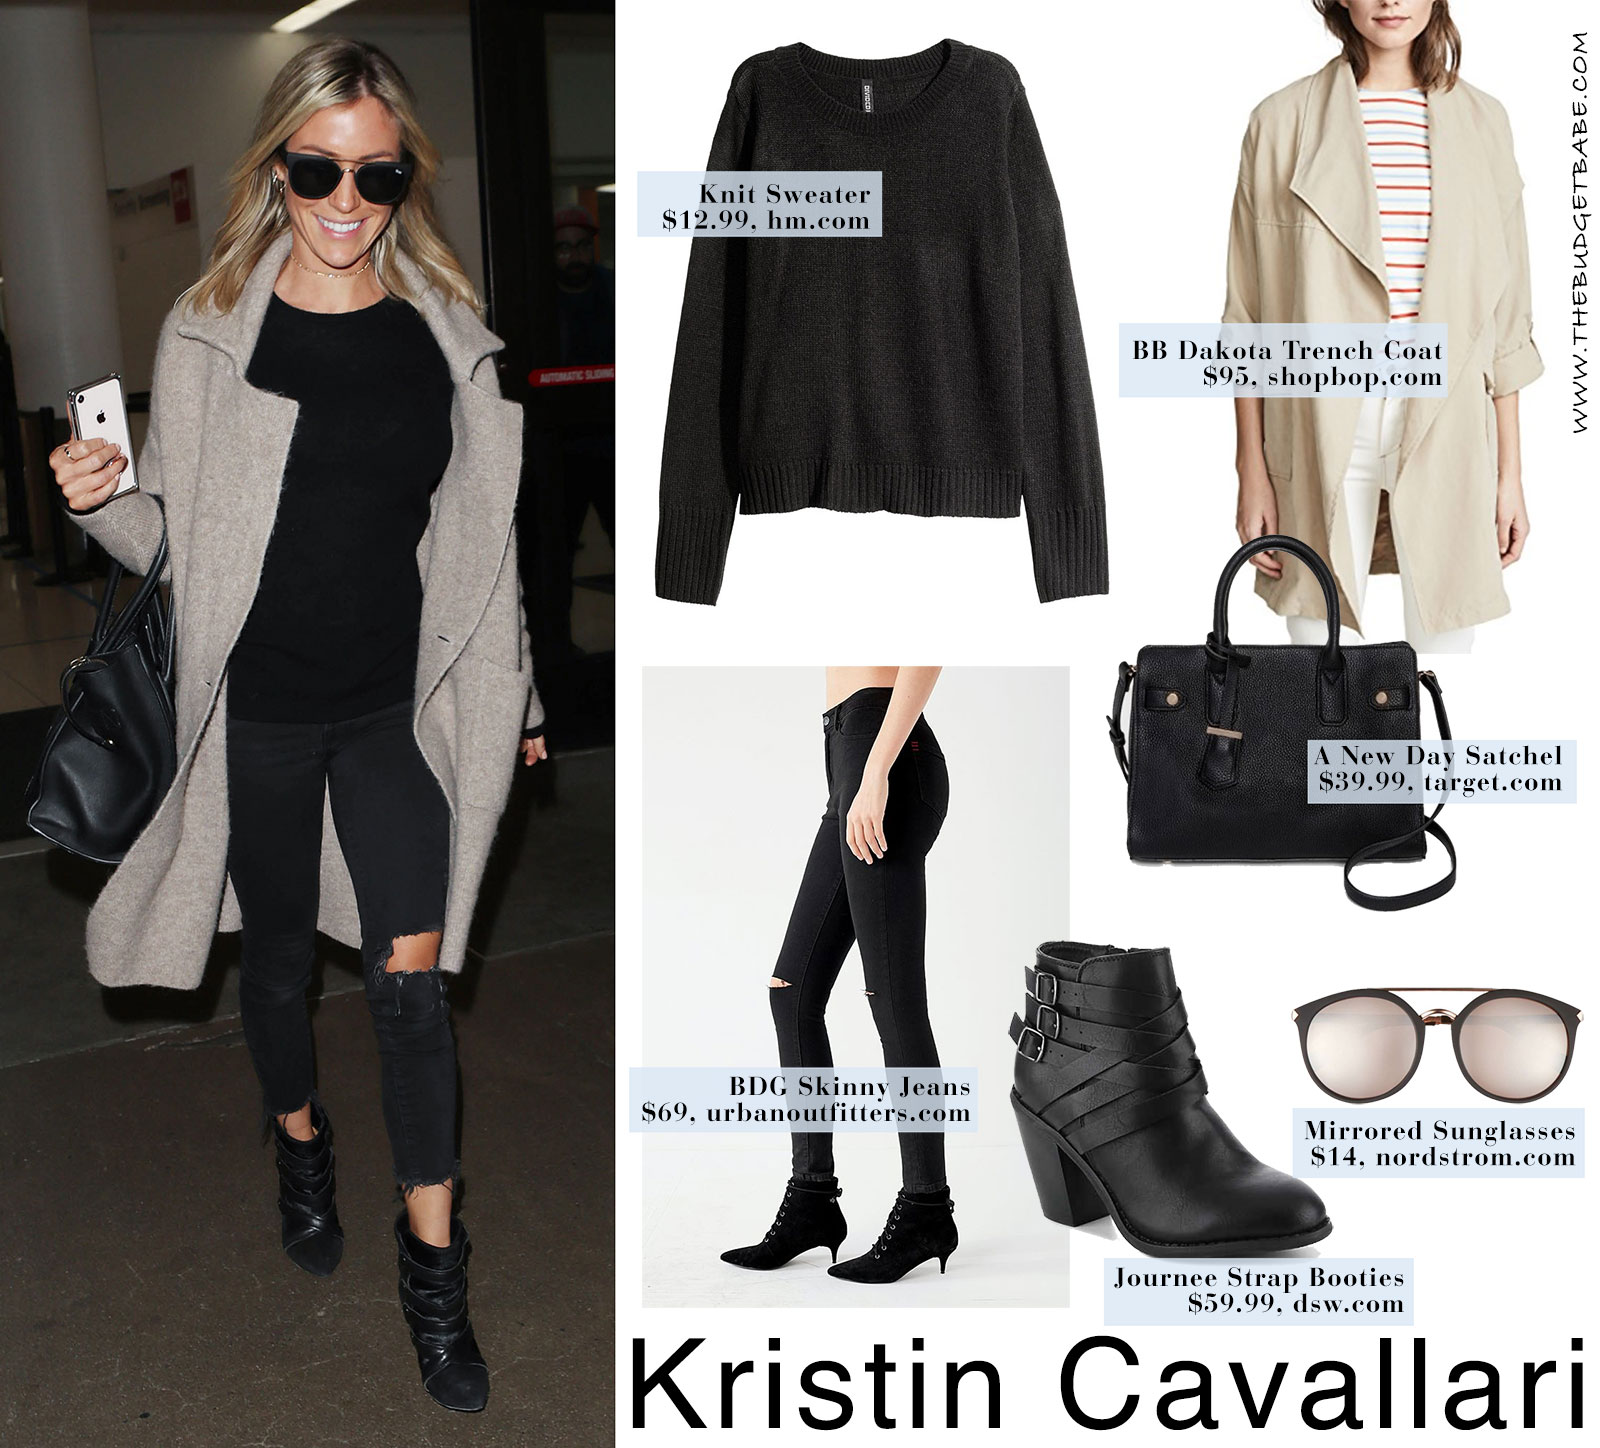 Kristin Cavallari's tan coat and black sweater with black ankle boots look for less